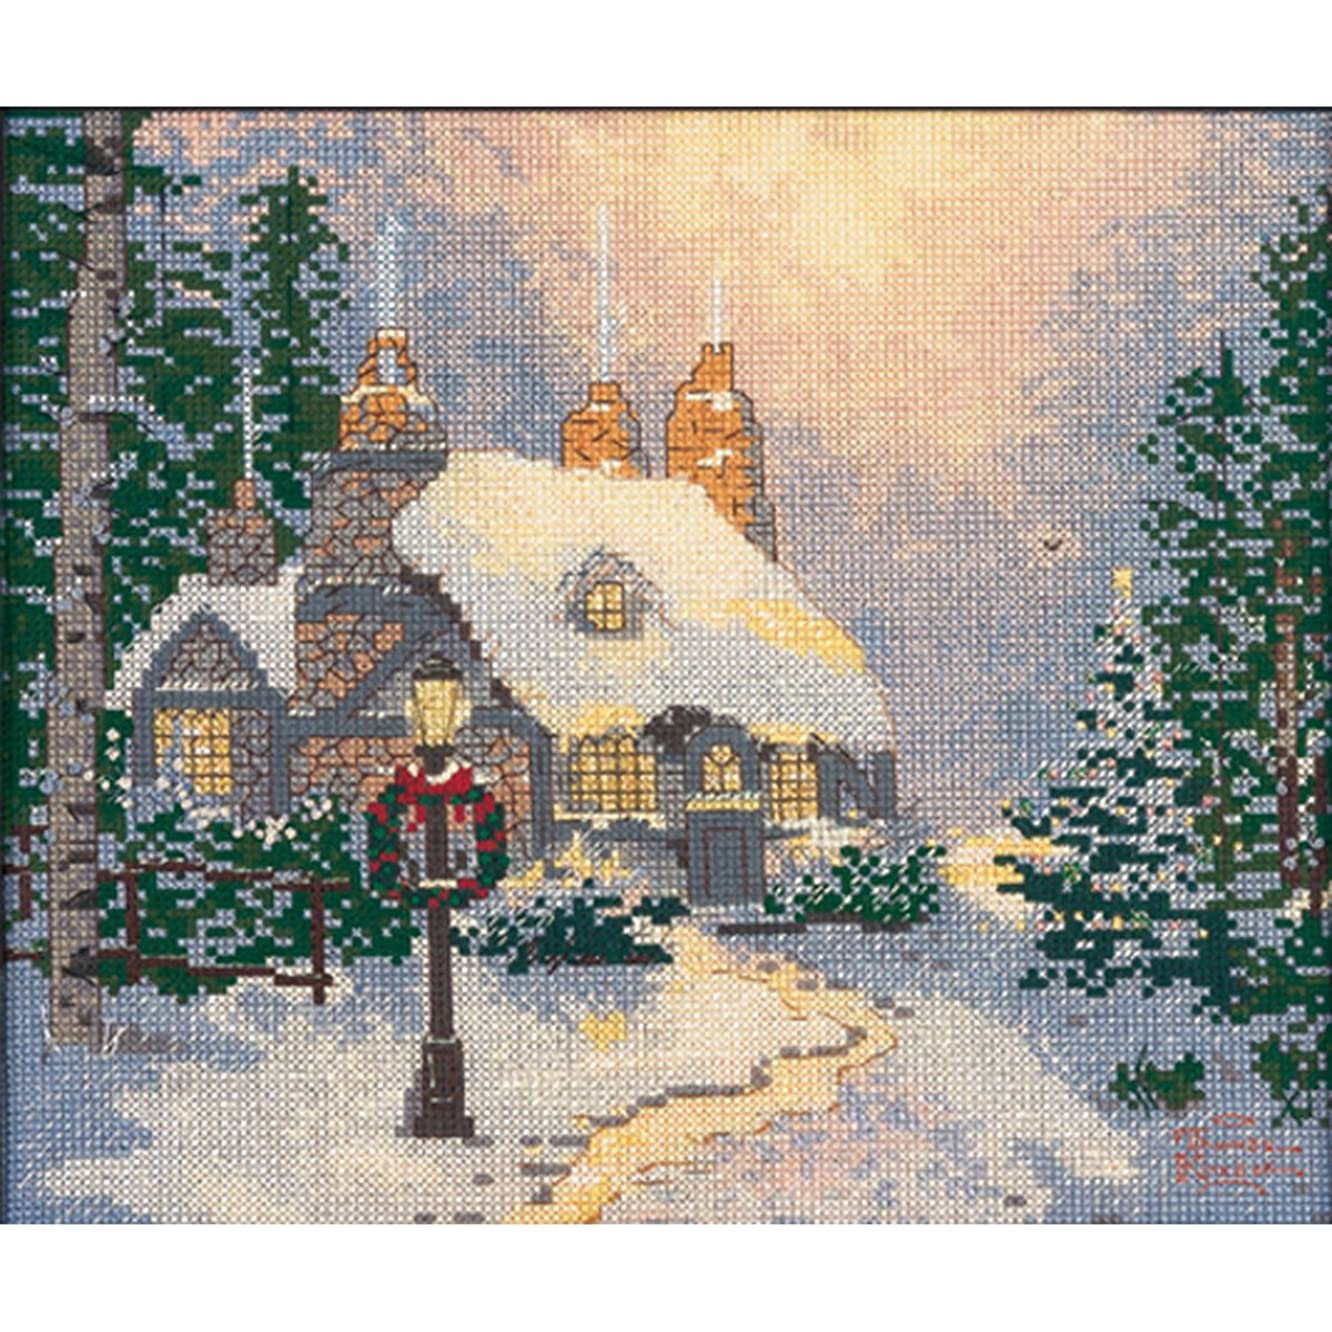 M C G Textiles 14 Count Thomas Kinkade Stonehearth Hutch Counted Cross Stitch Kit, 10 by 8-Inch